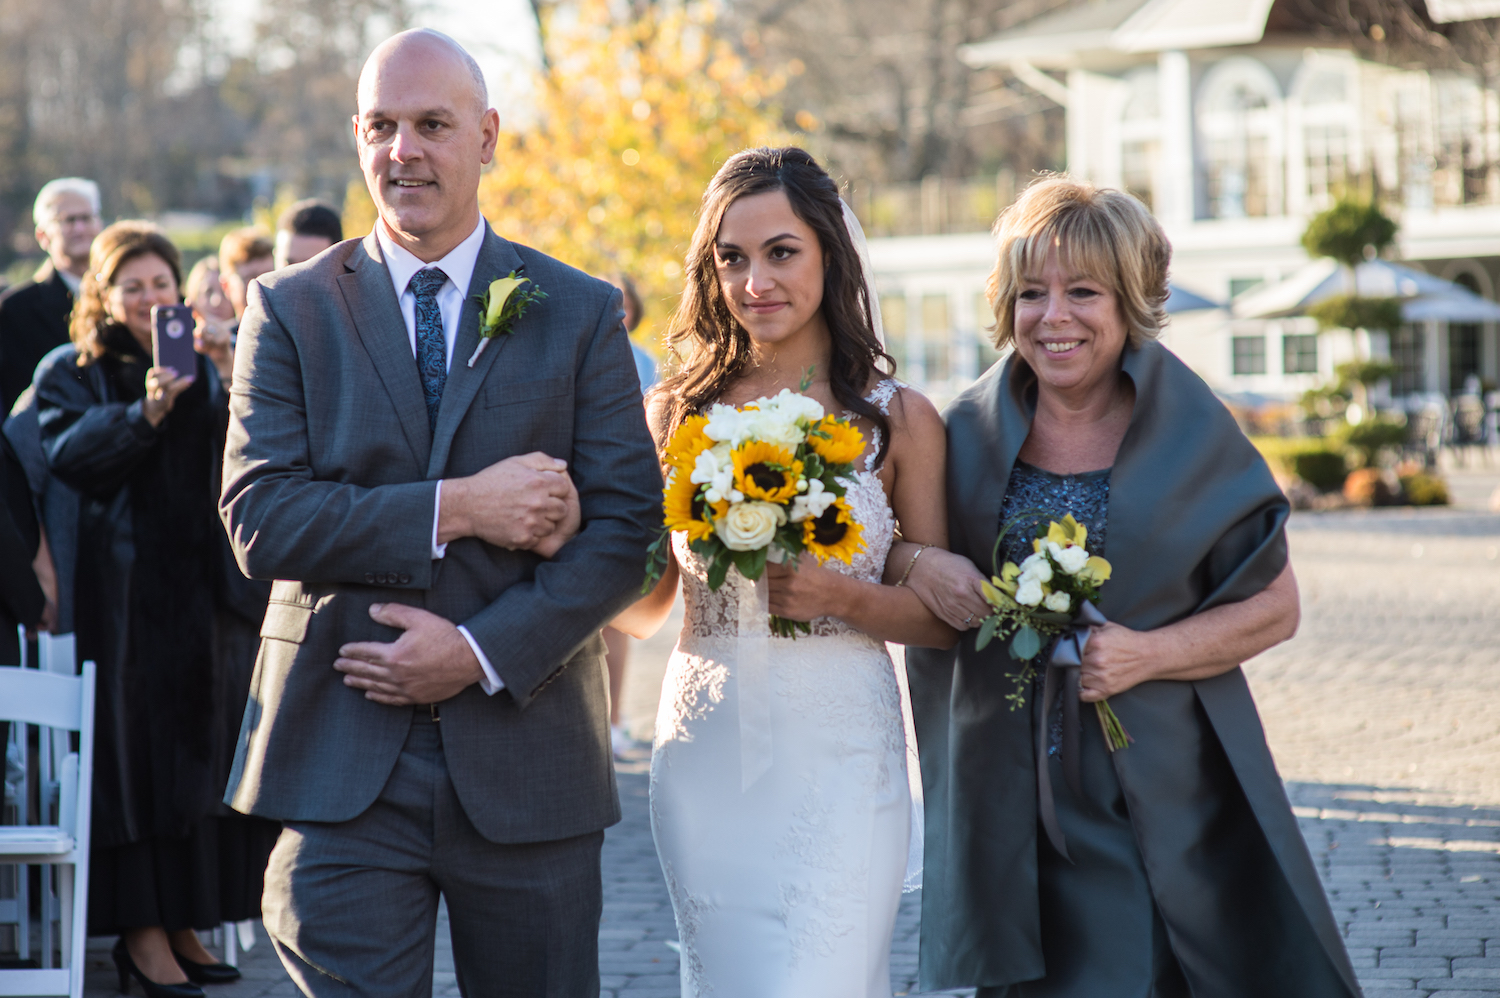 madeline-parents-walk-down-aisle-nj-wedding-photography